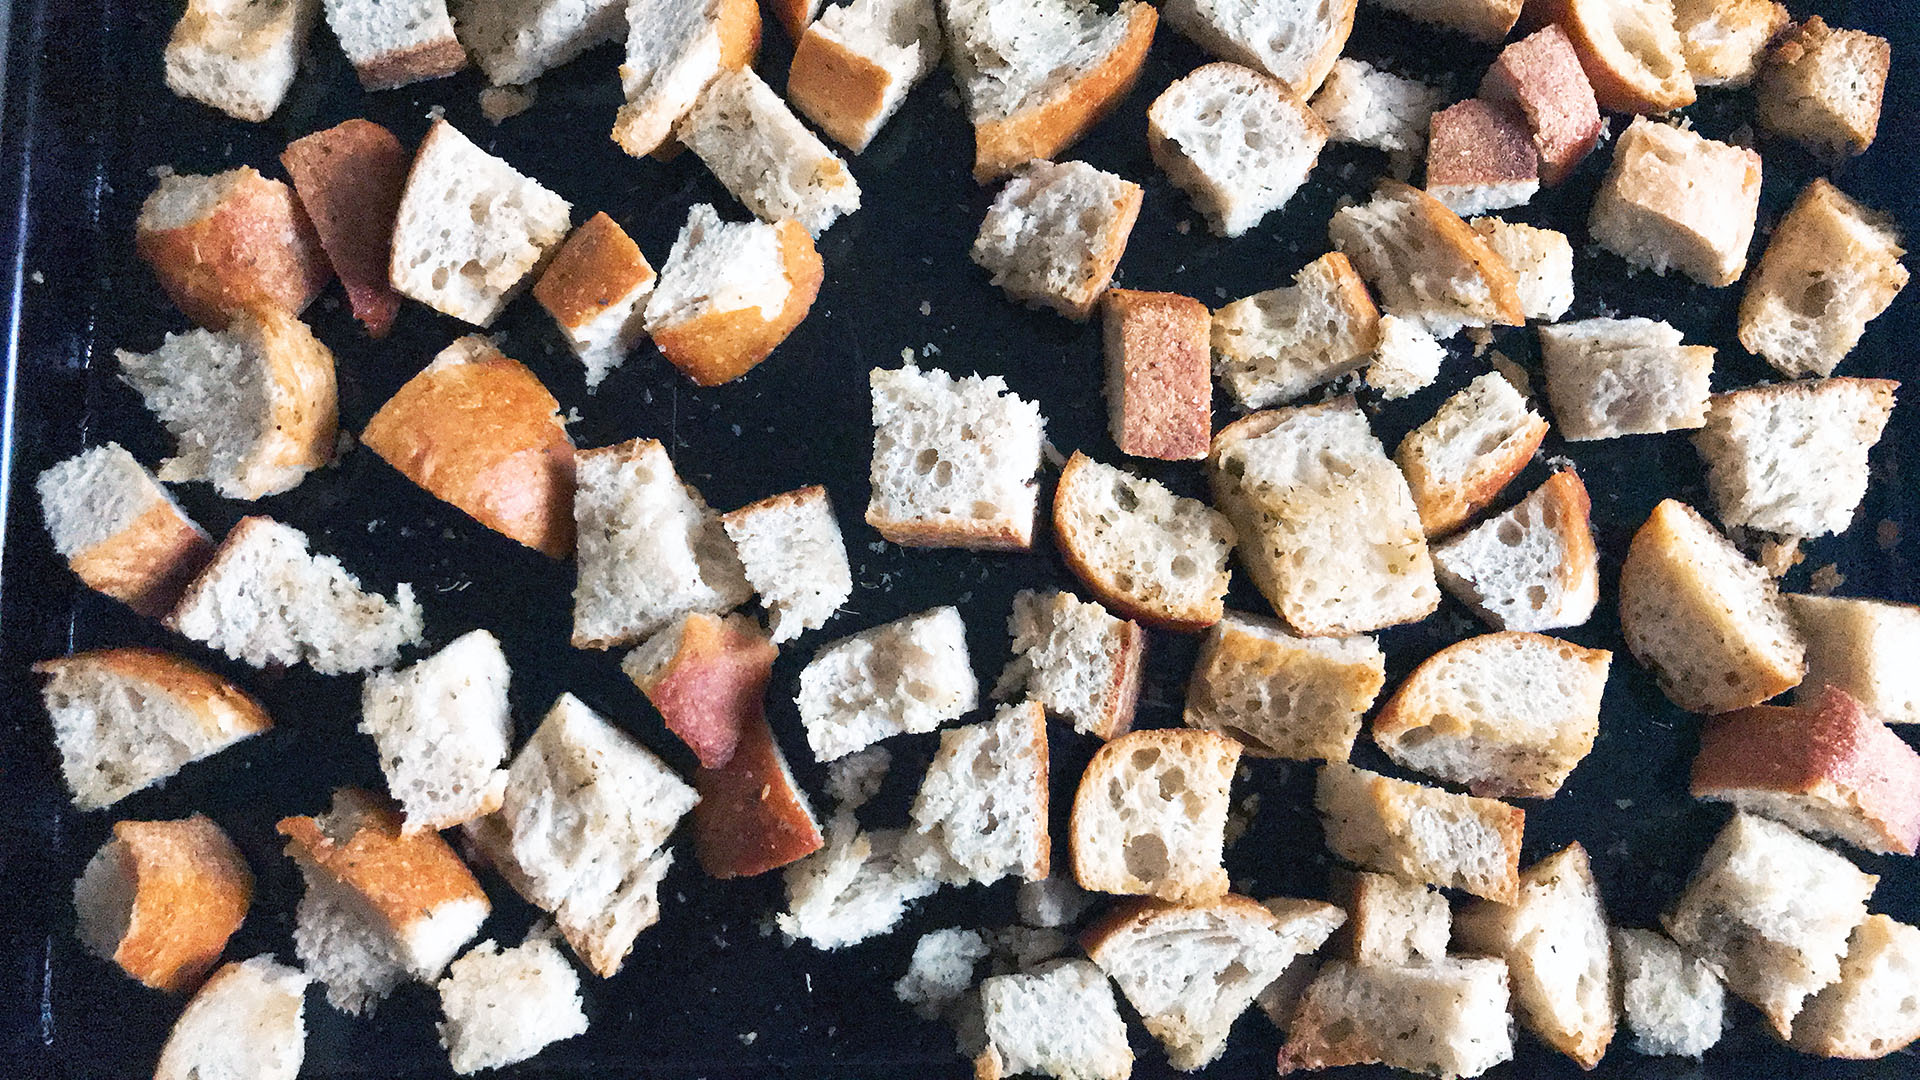 croutons on black baking tray